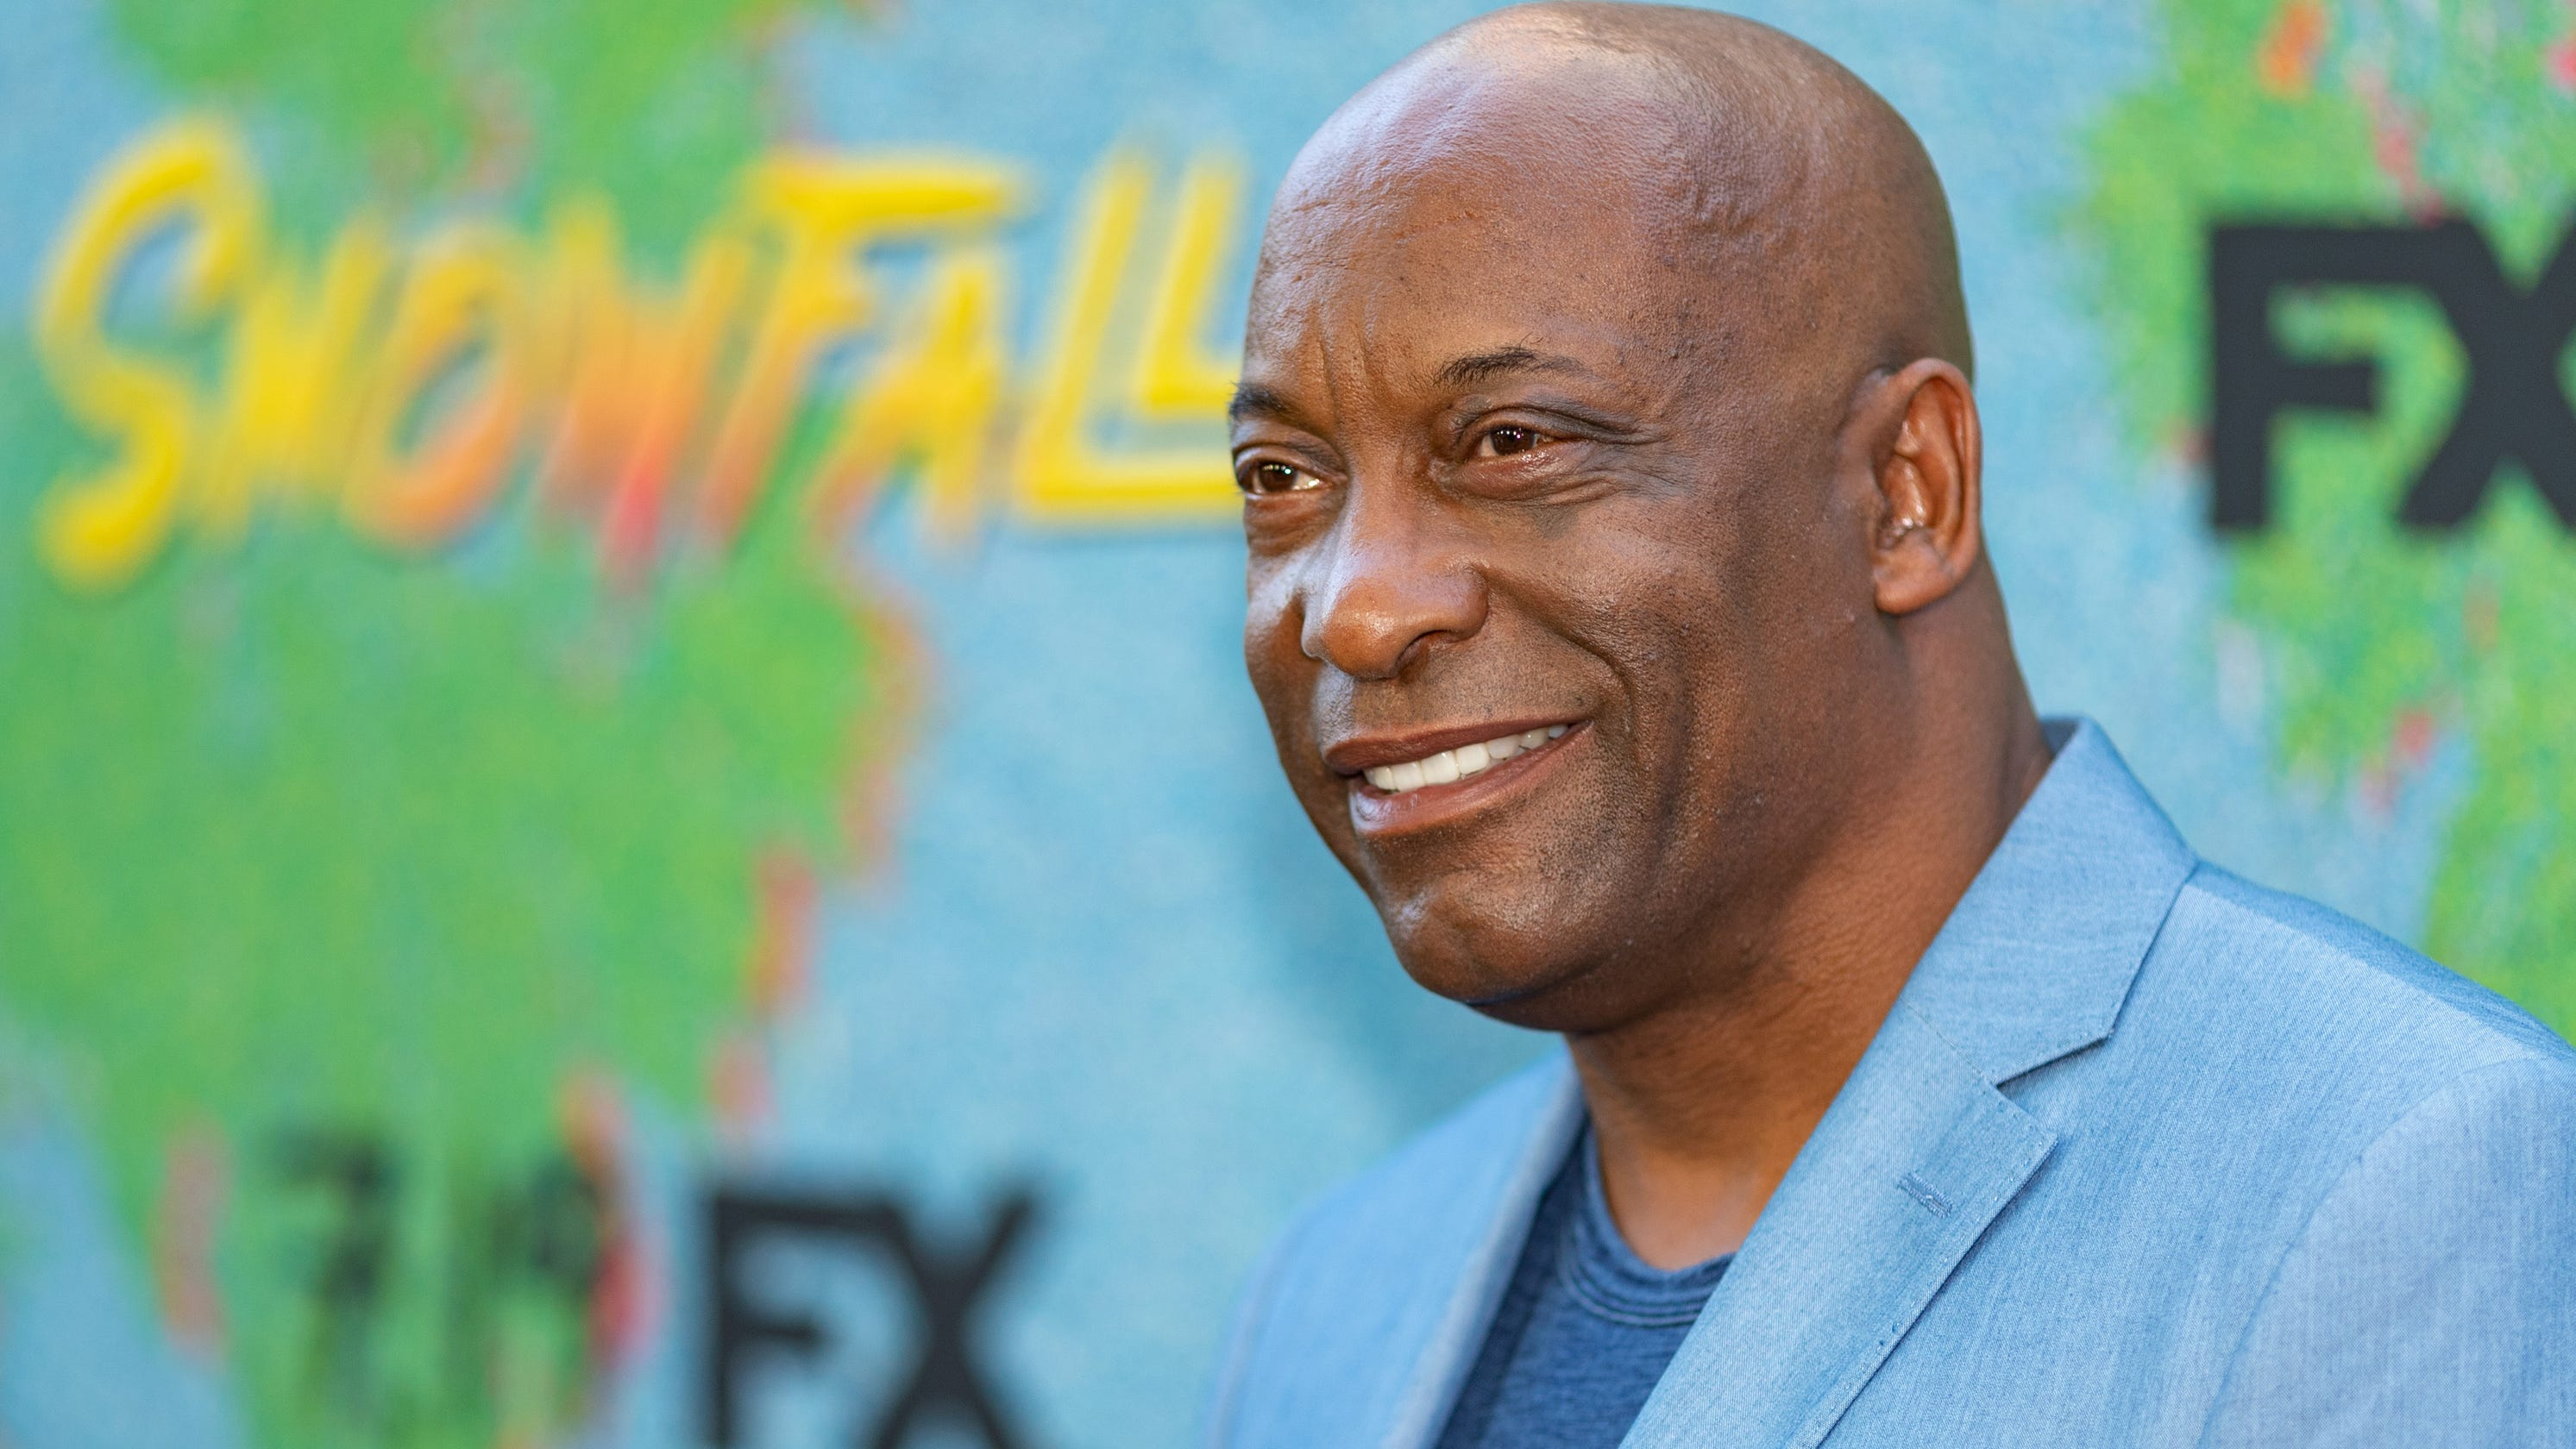 John Singleton dead at 51 following stroke